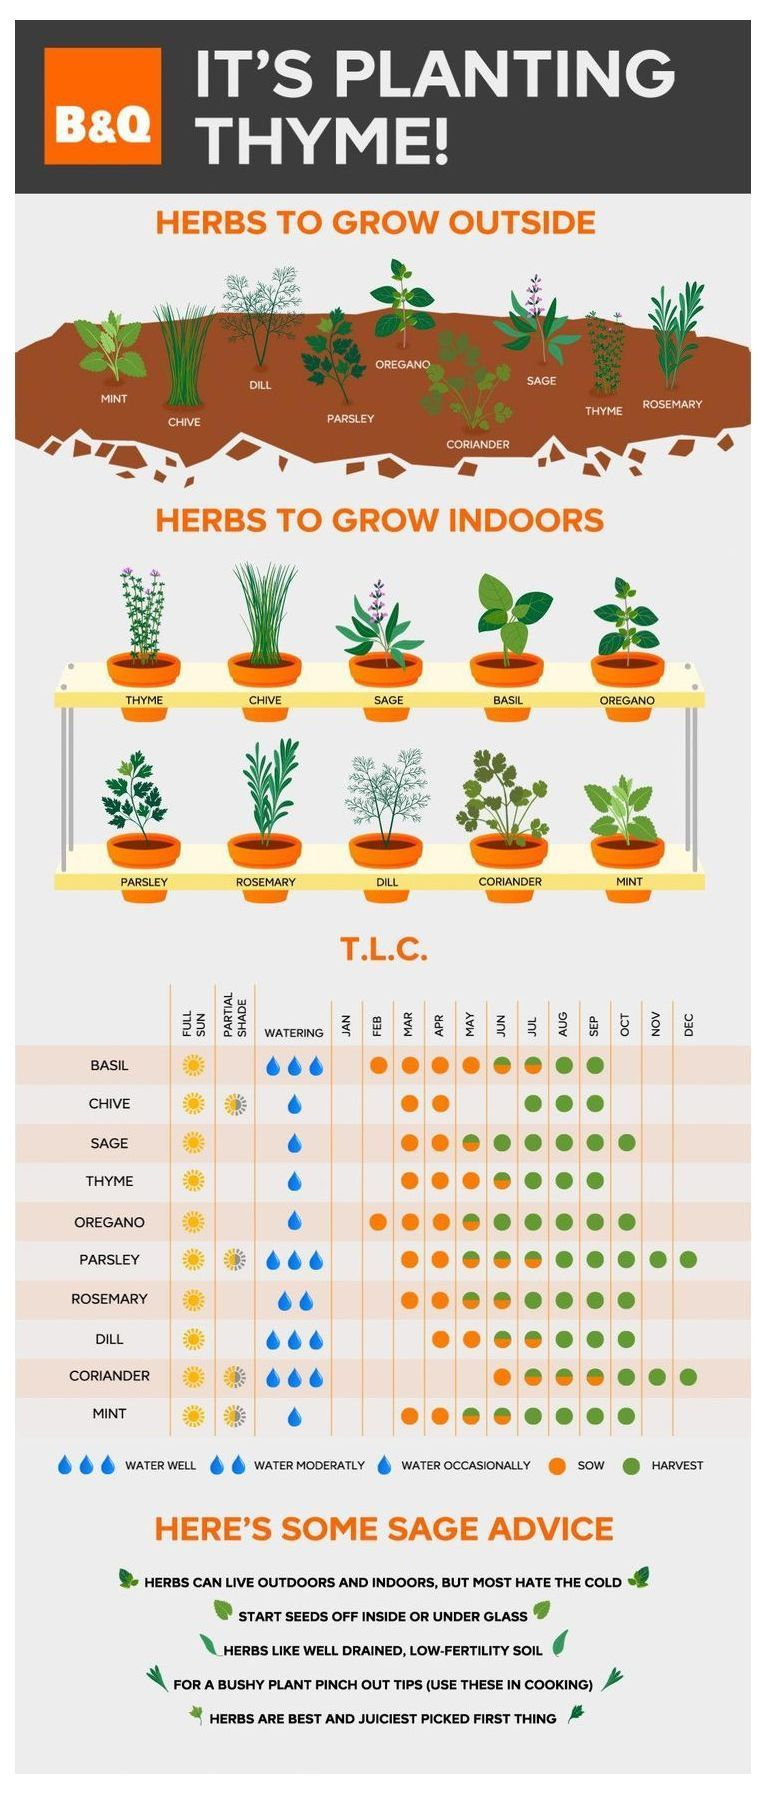 Create A Garden To Remember With This Useful Advice. | Herb Garden Indoor | Vertical Herb Gardens | Herb Planter Ideas | Companion Planting Herbs In Pots. #growyourownfood #nochemicals #vegetablegardening #outdoorherbgarden